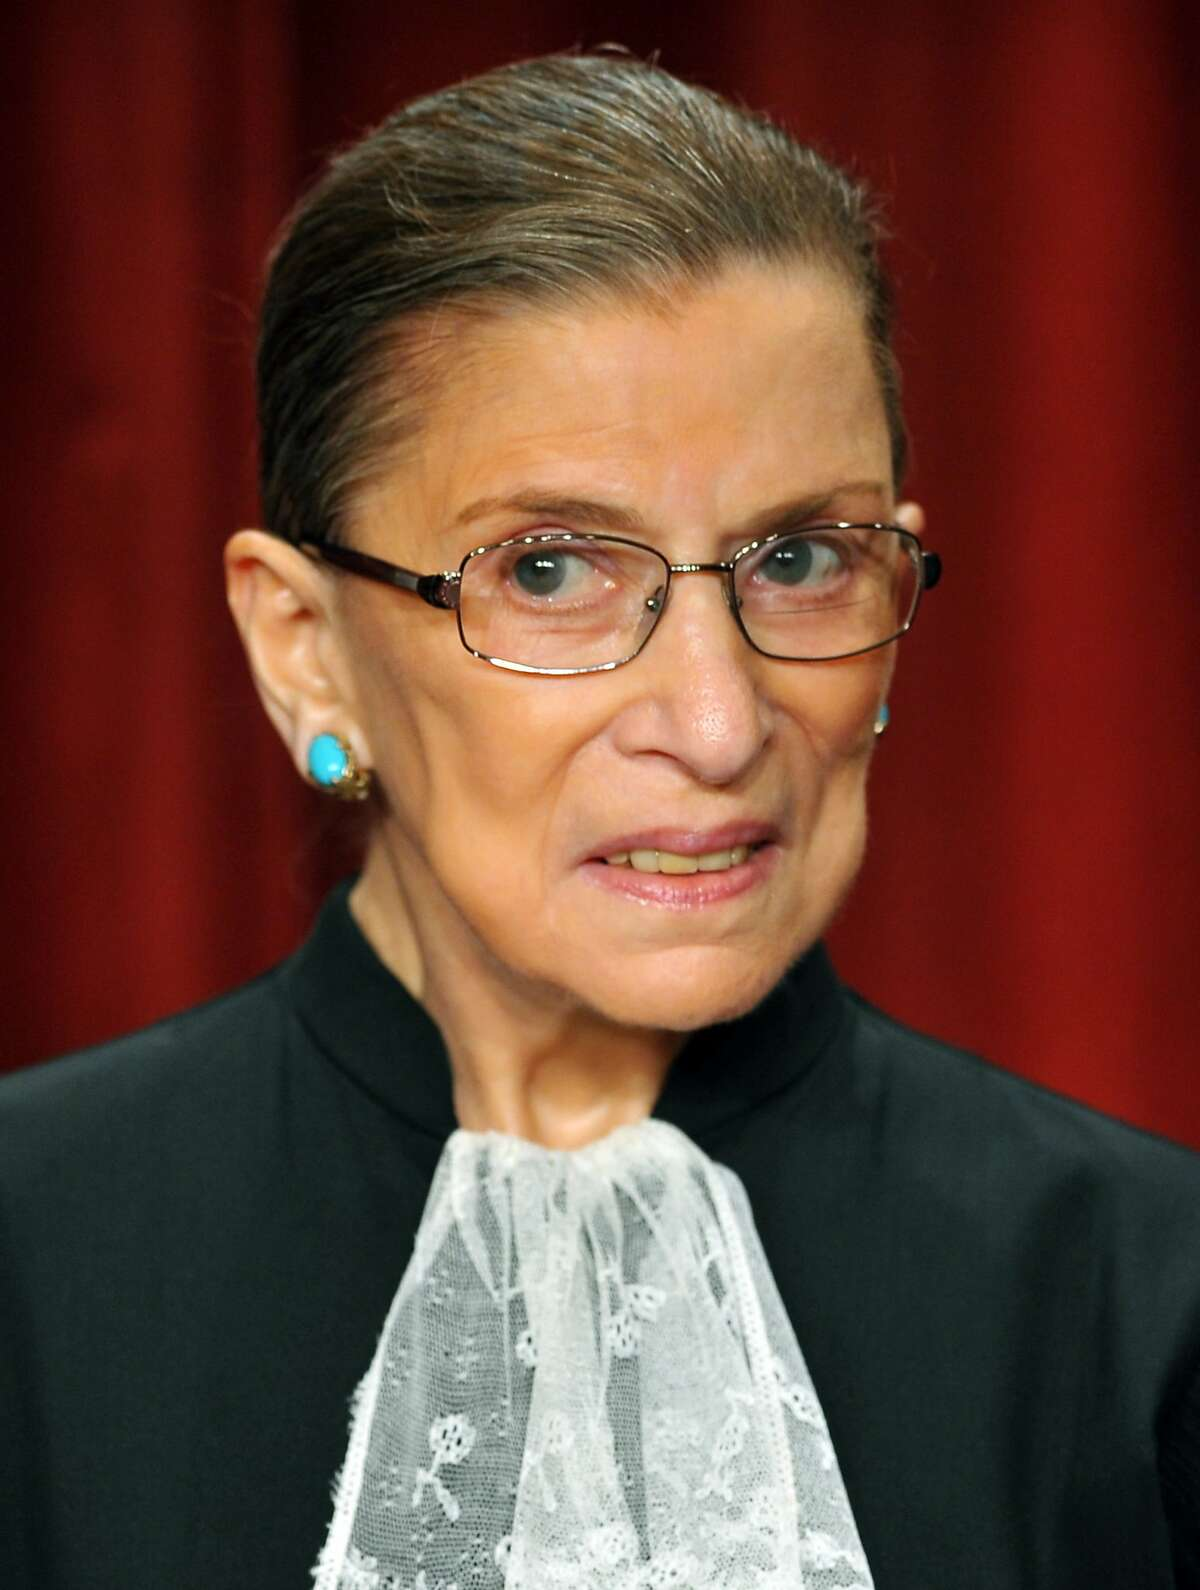 This September 29, 2009 file photo shows US Supreme Court Justice Ruth Bader Ginsburg during a group photo in the East Conference Room of the Supreme Court in Washington, DC.